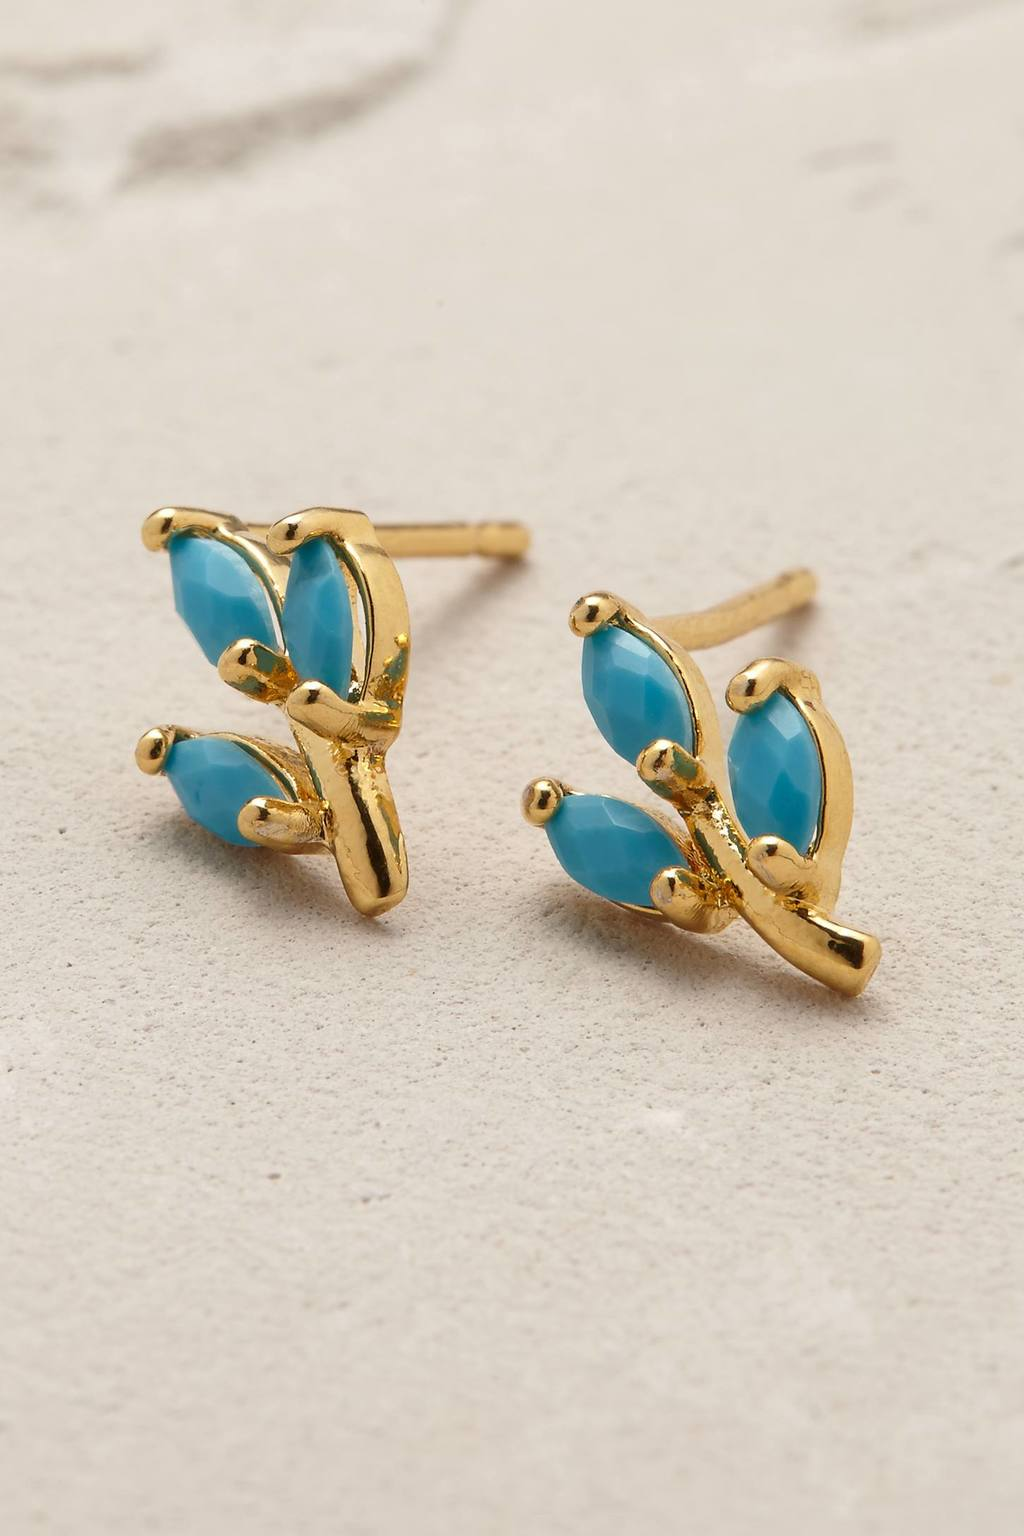 Goldleaf Earrings - secondary colour: diva blue; predominant colour: gold; occasions: evening, occasion; style: stud; length: short; size: small/fine; material: chain/metal; fastening: pierced; finish: plain; embellishment: jewels/stone; season: s/s 2016; wardrobe: event